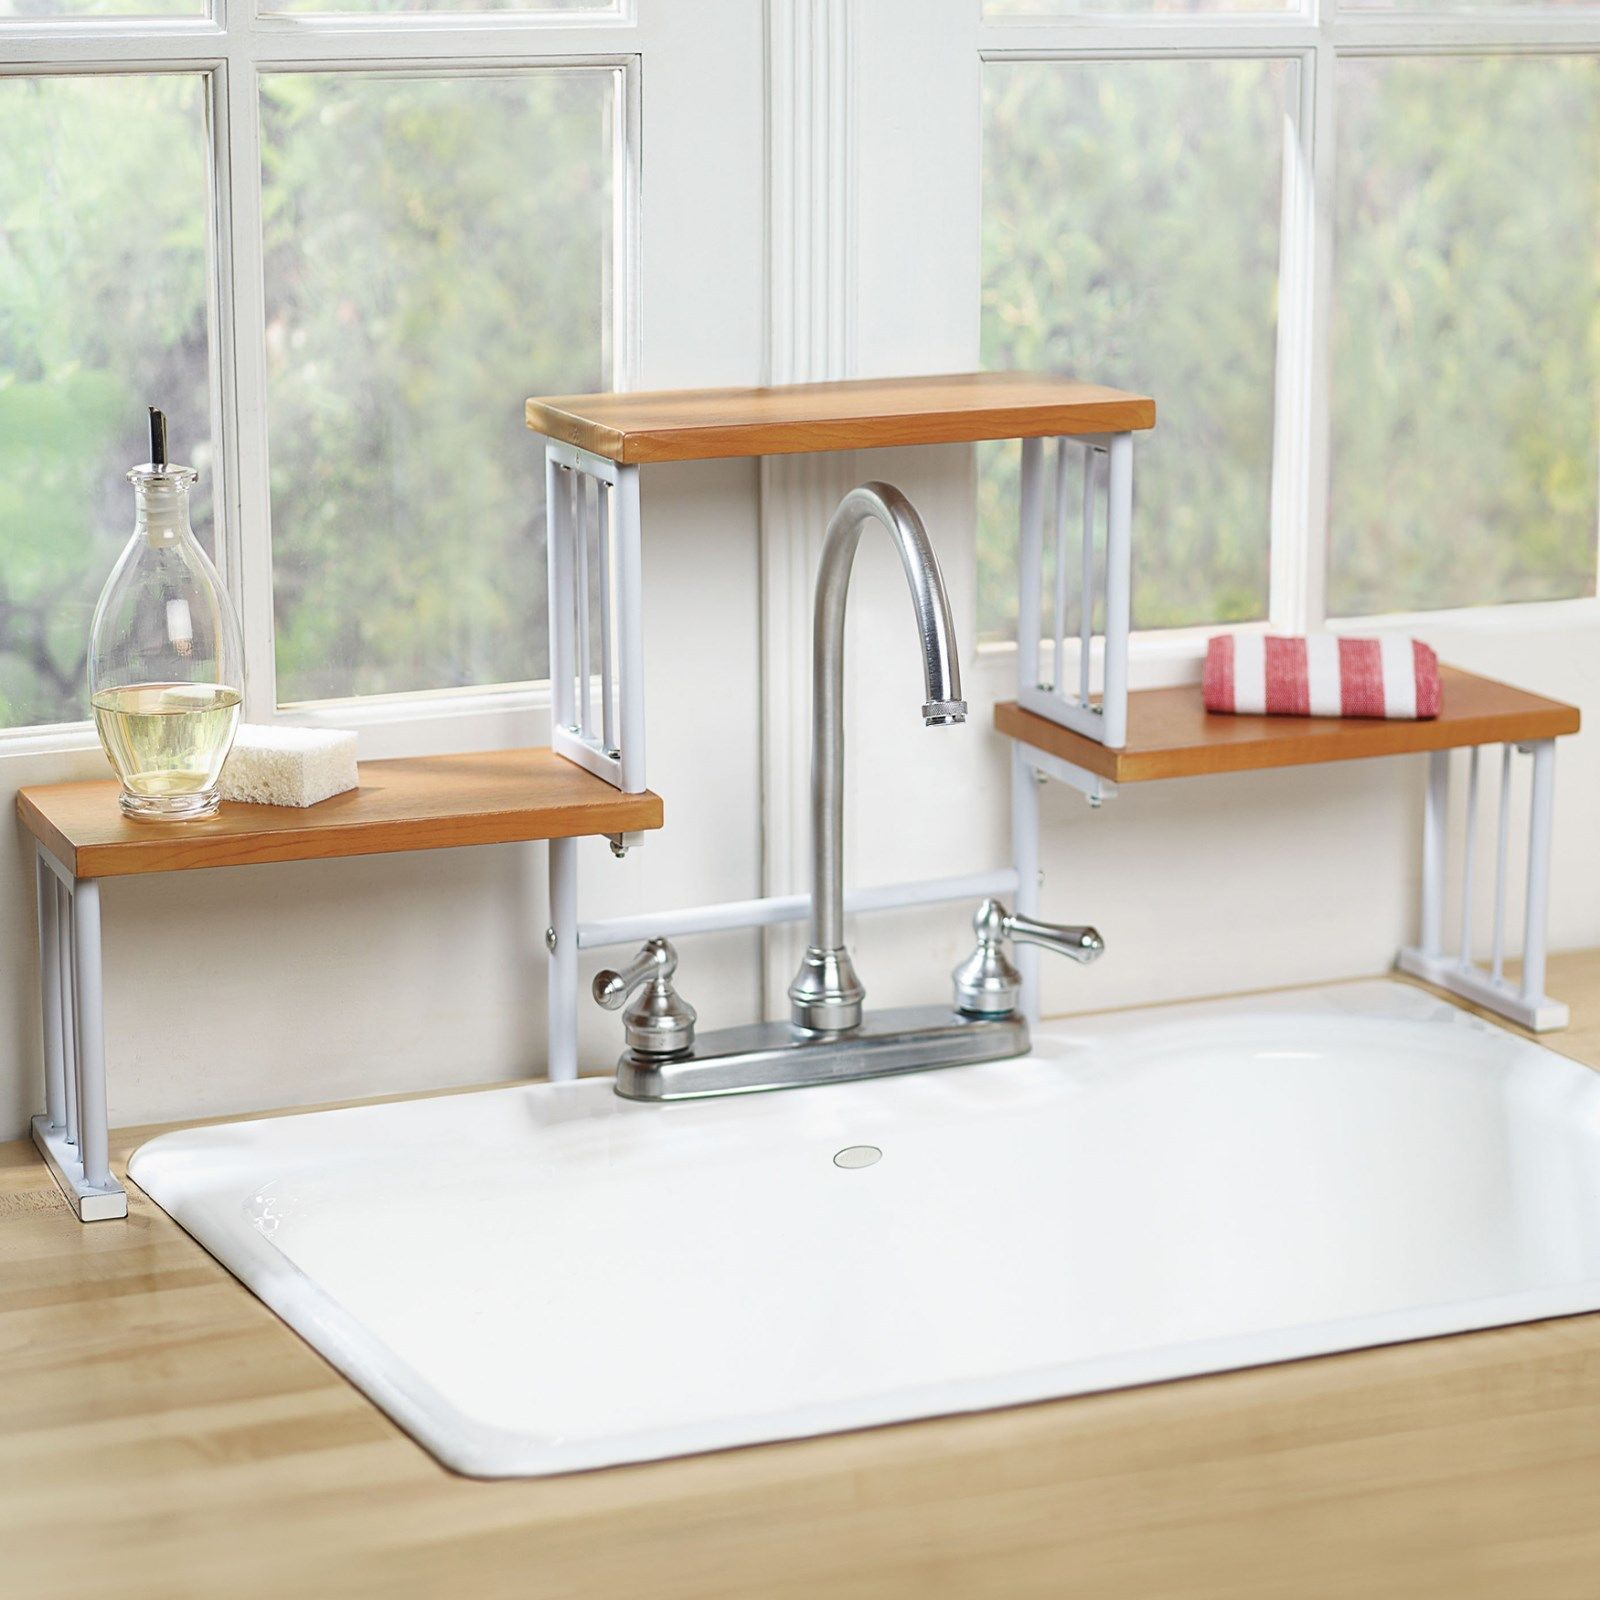 Over The Kitchen Sink Organizer